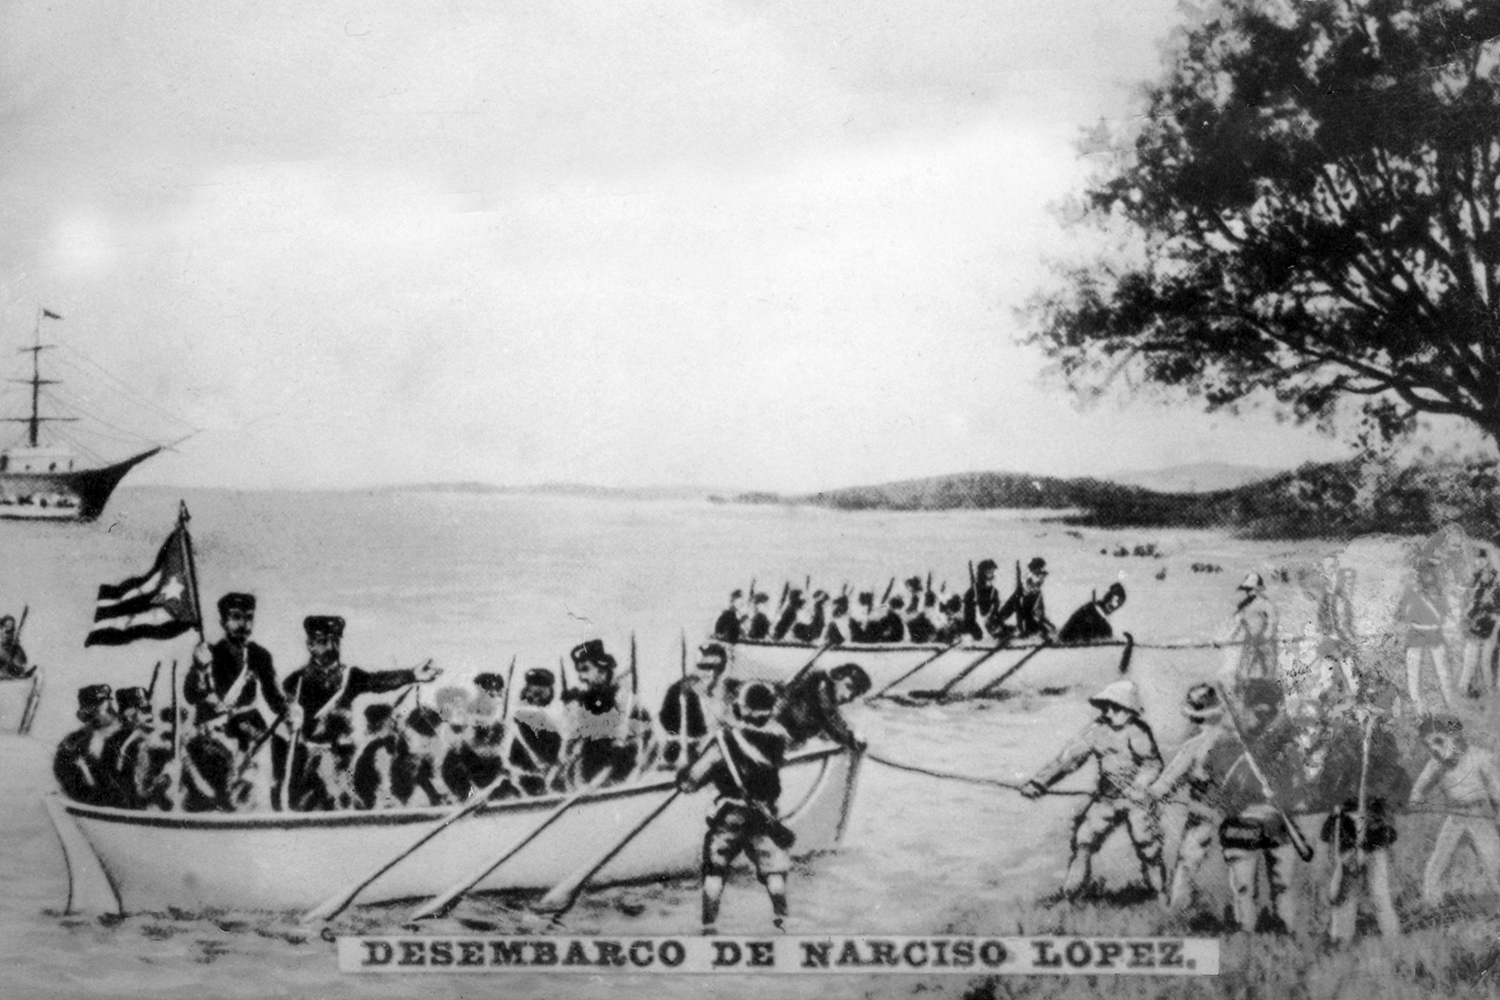 A cigar card from the history of Cuba shows the landing of Narciso López in Cardenas on May 19, 1850, as his men raise the flag of the lone star for the first time in Cuba.